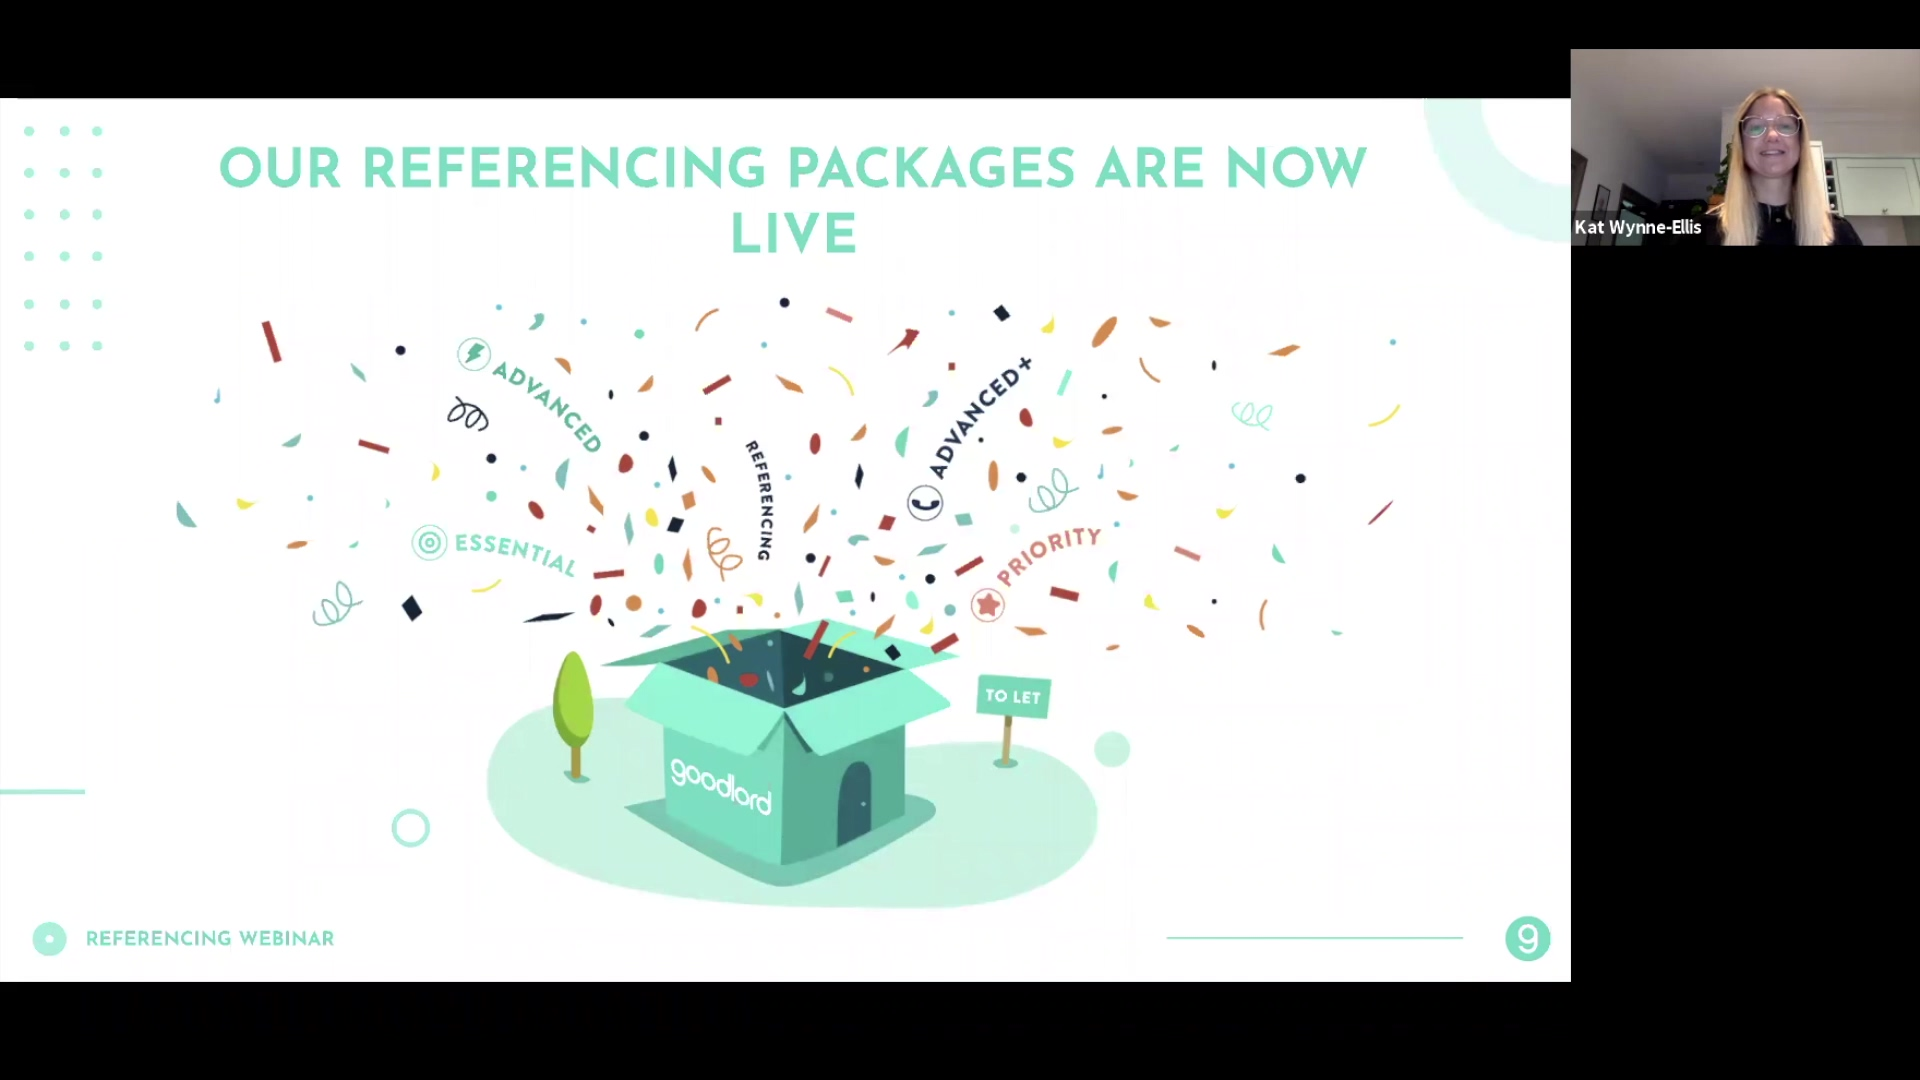 Our new referencing packages